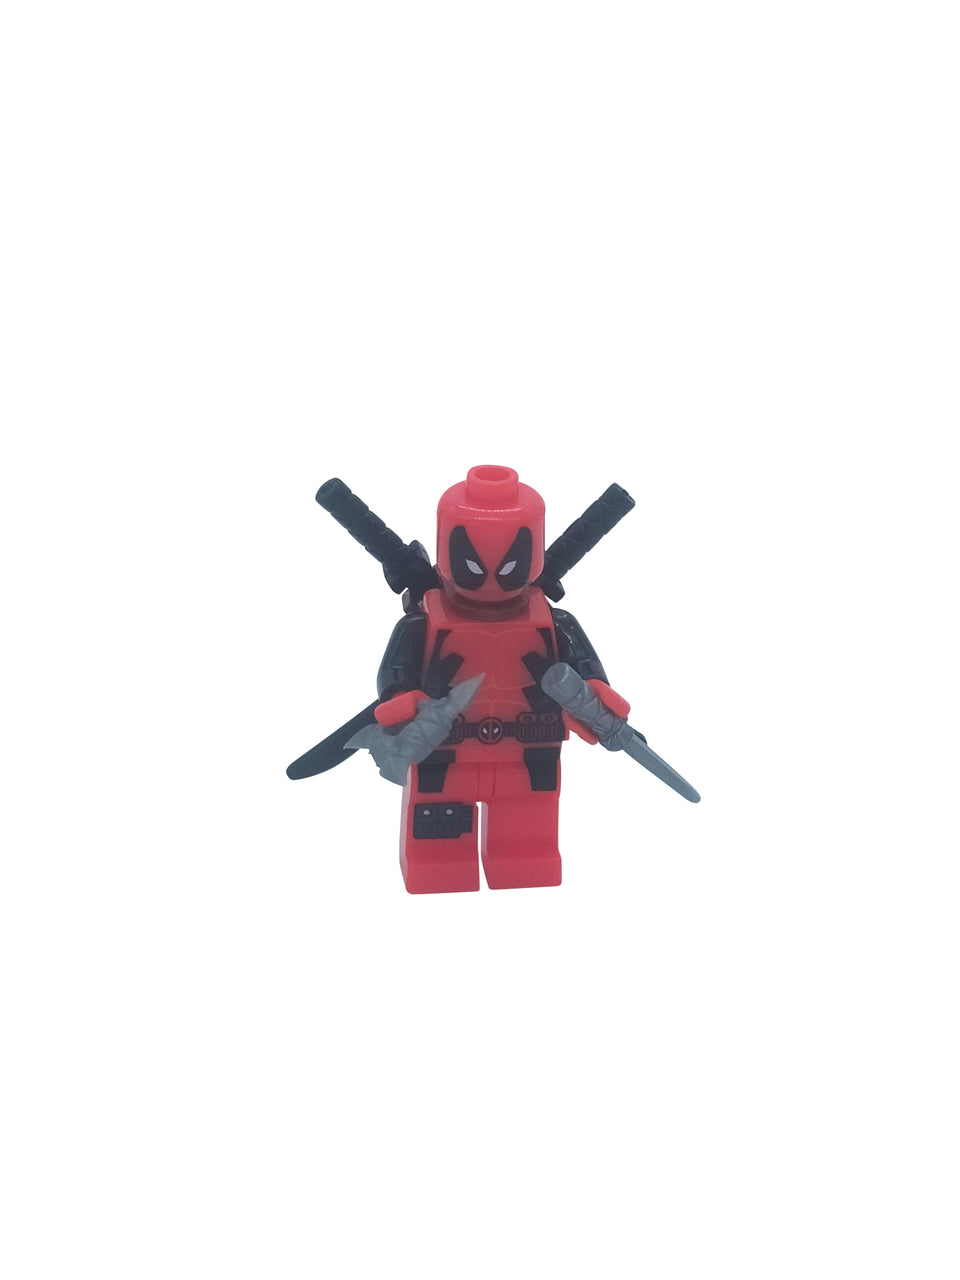 deadpool minifigure with accessories  - lego